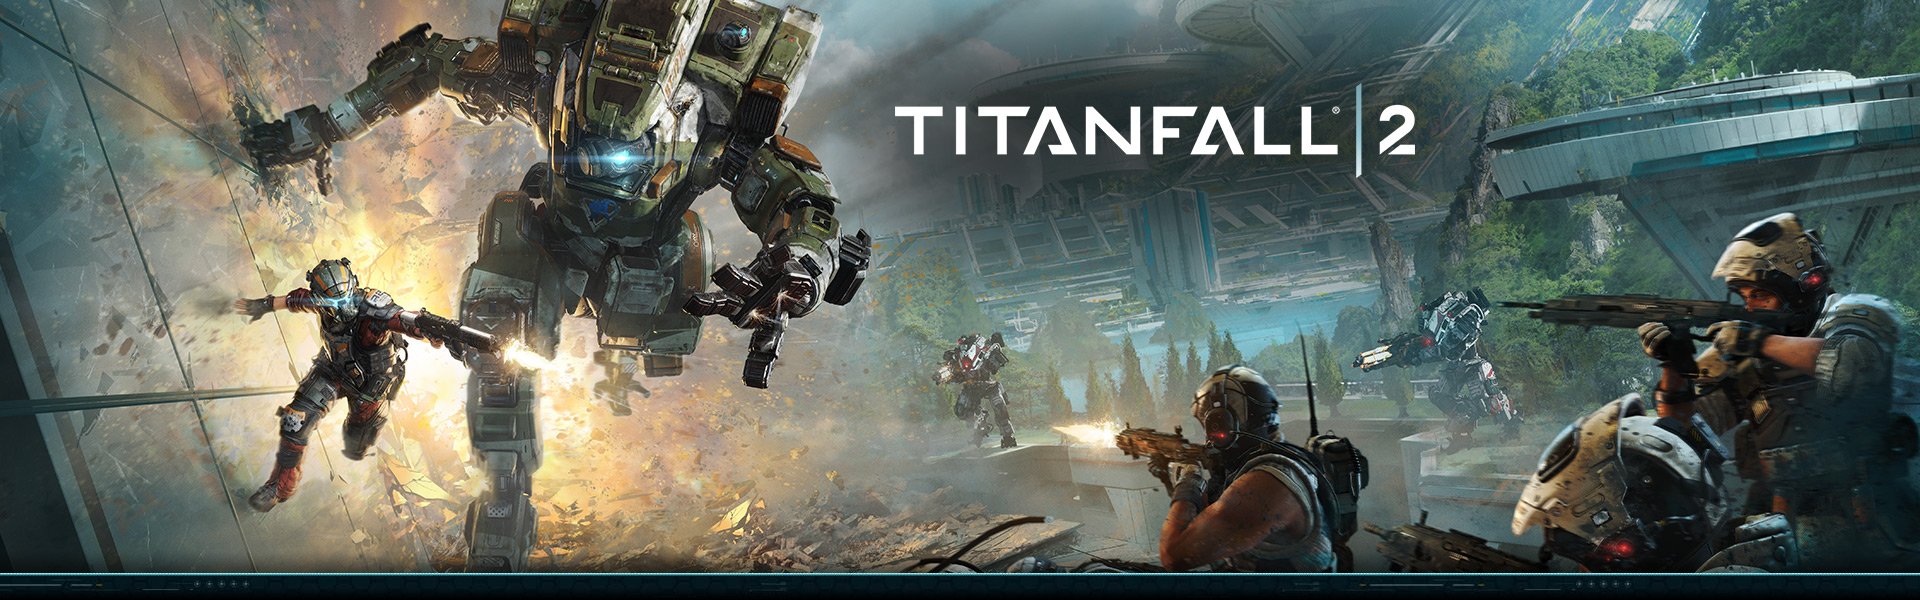 Titanfall 2 soldiers battling